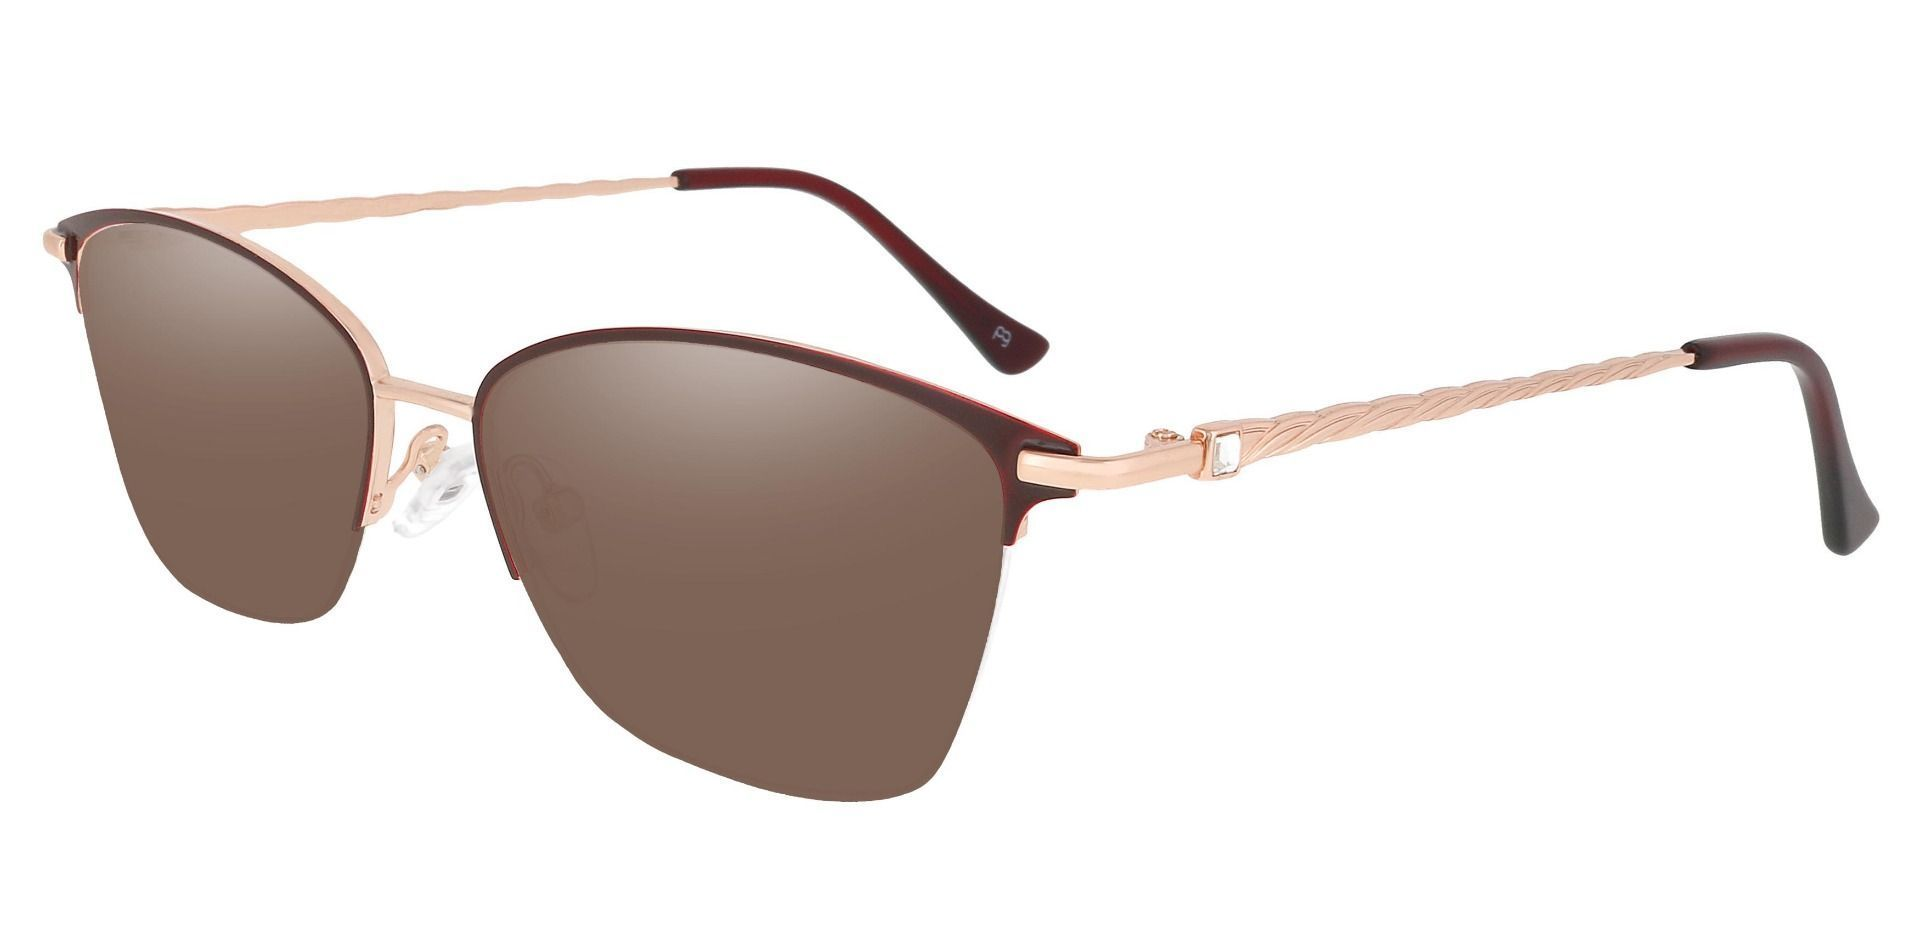 Marigold Rectangle Prescription Sunglasses - Red Frame With Brown Lenses